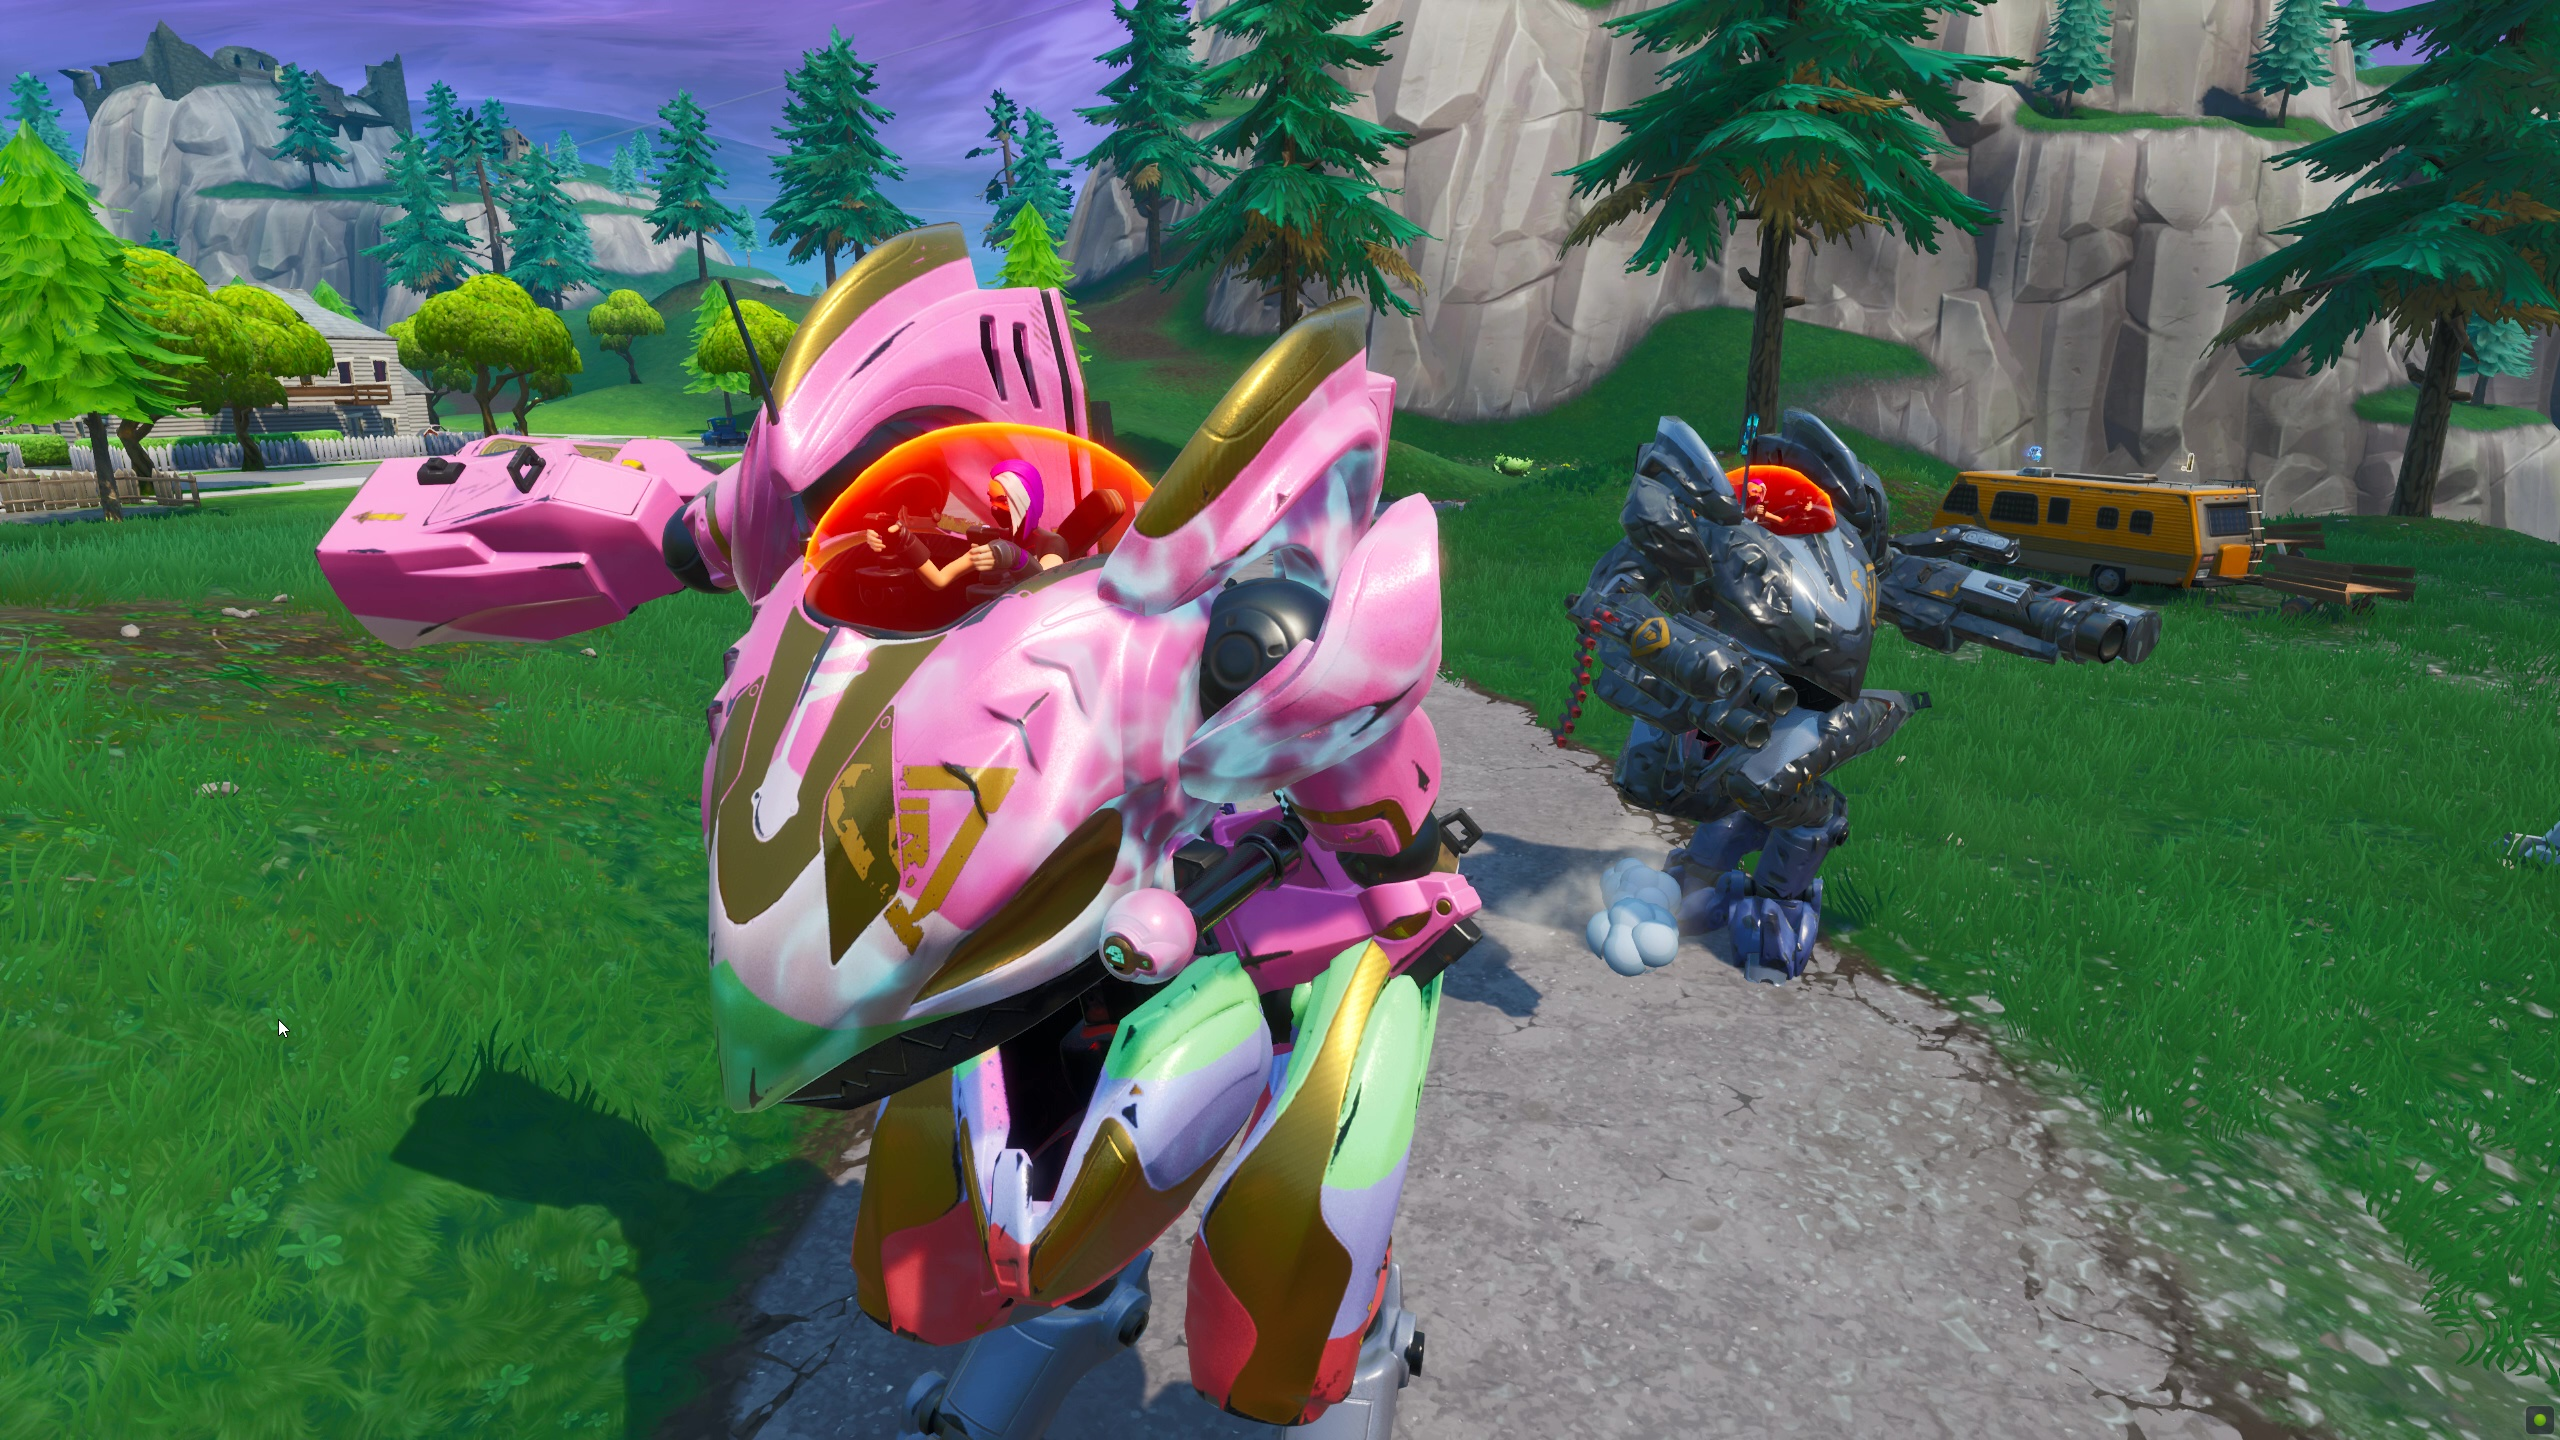 Fortnite mechs: pro teams beg Epic to remove them from competitive